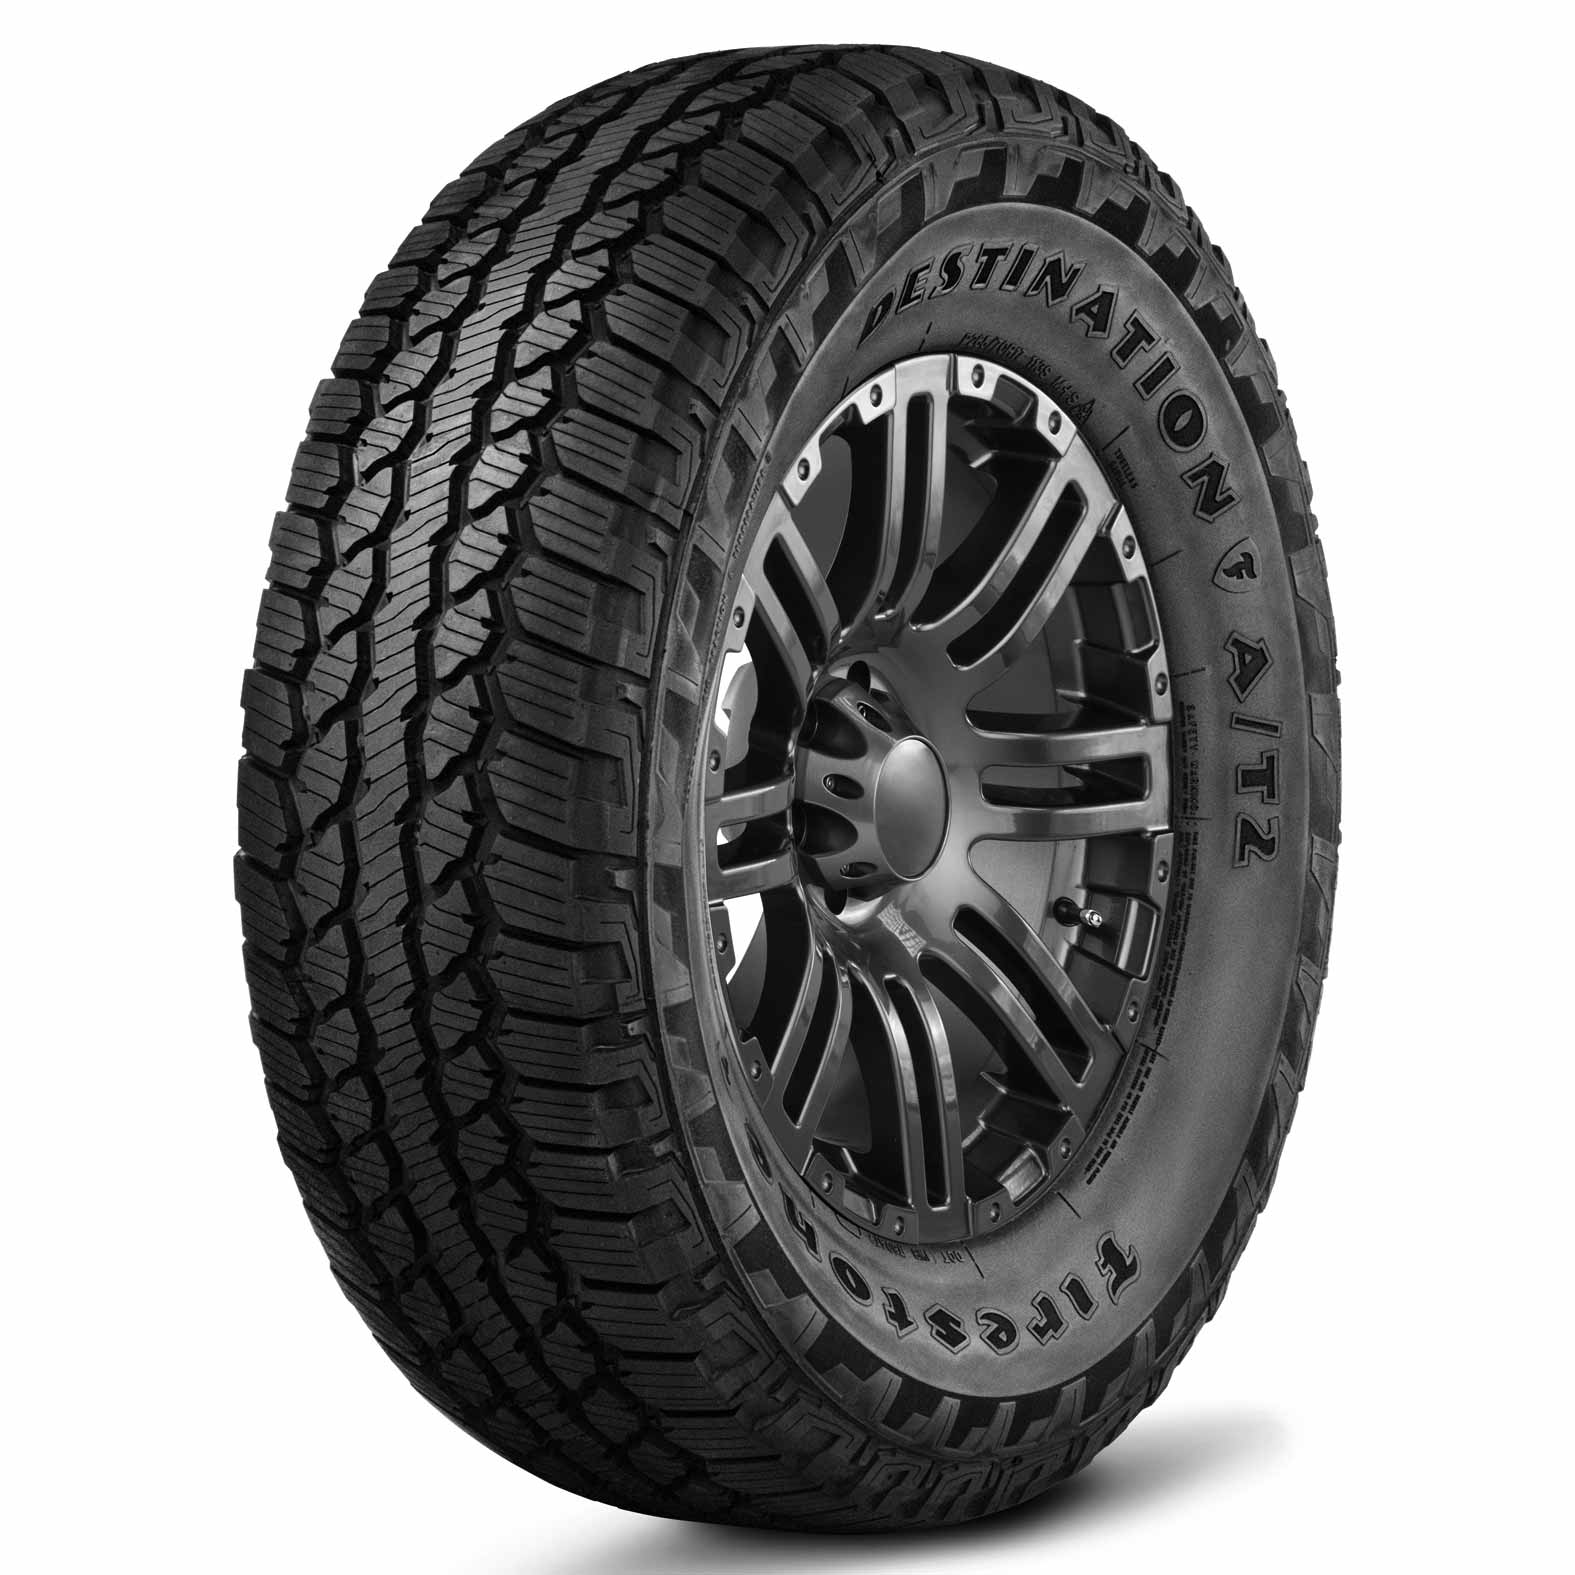 Firestone Destination A/T2 tire - angle